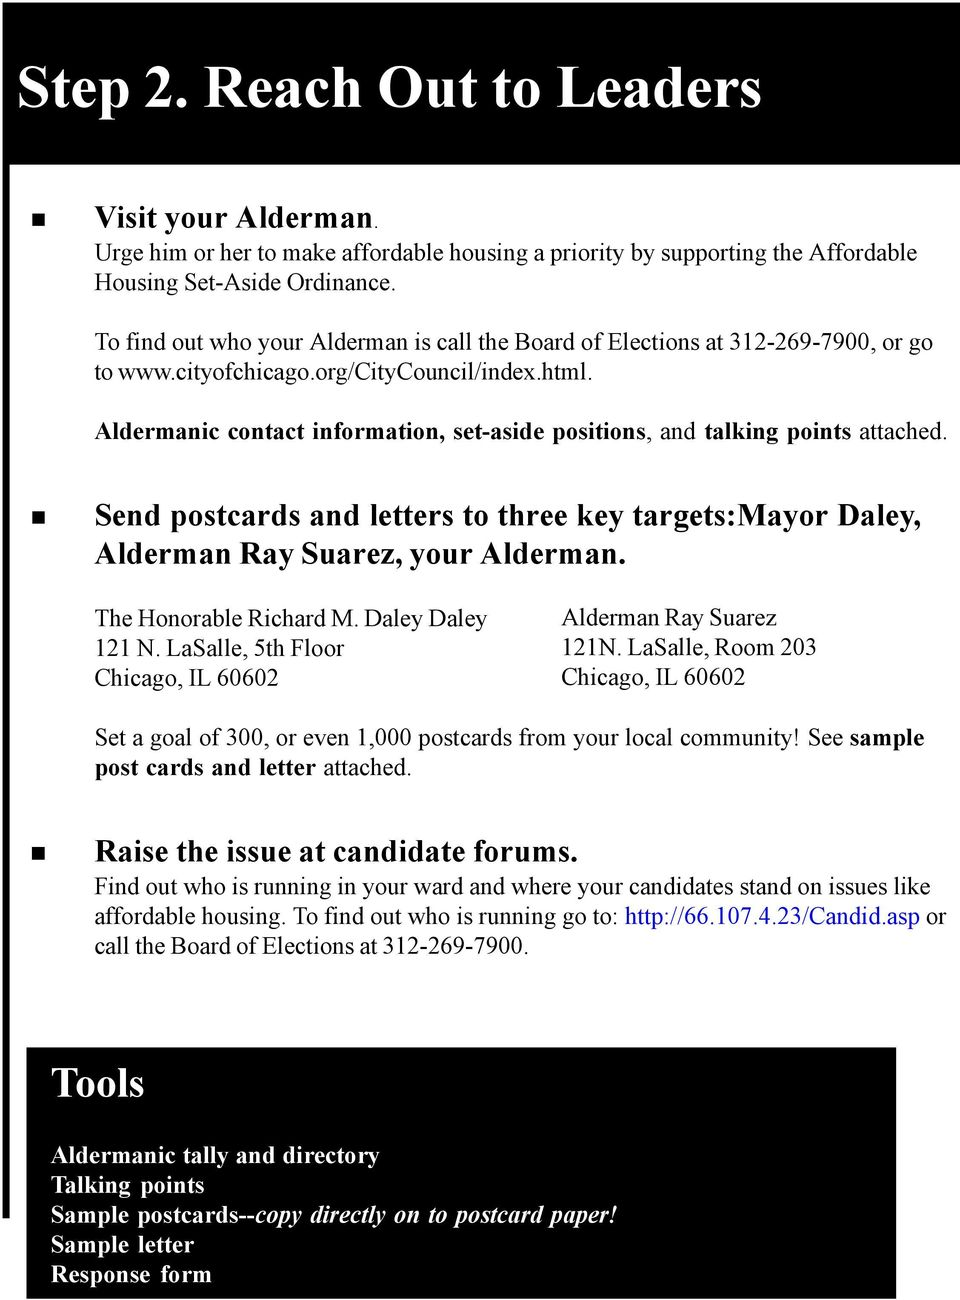 Aldermanic contact information, set-aside positions, and talking points attached. Send postcards and letters to three key targets:mayor Daley, Alderman Ray Suarez, your Alderman.